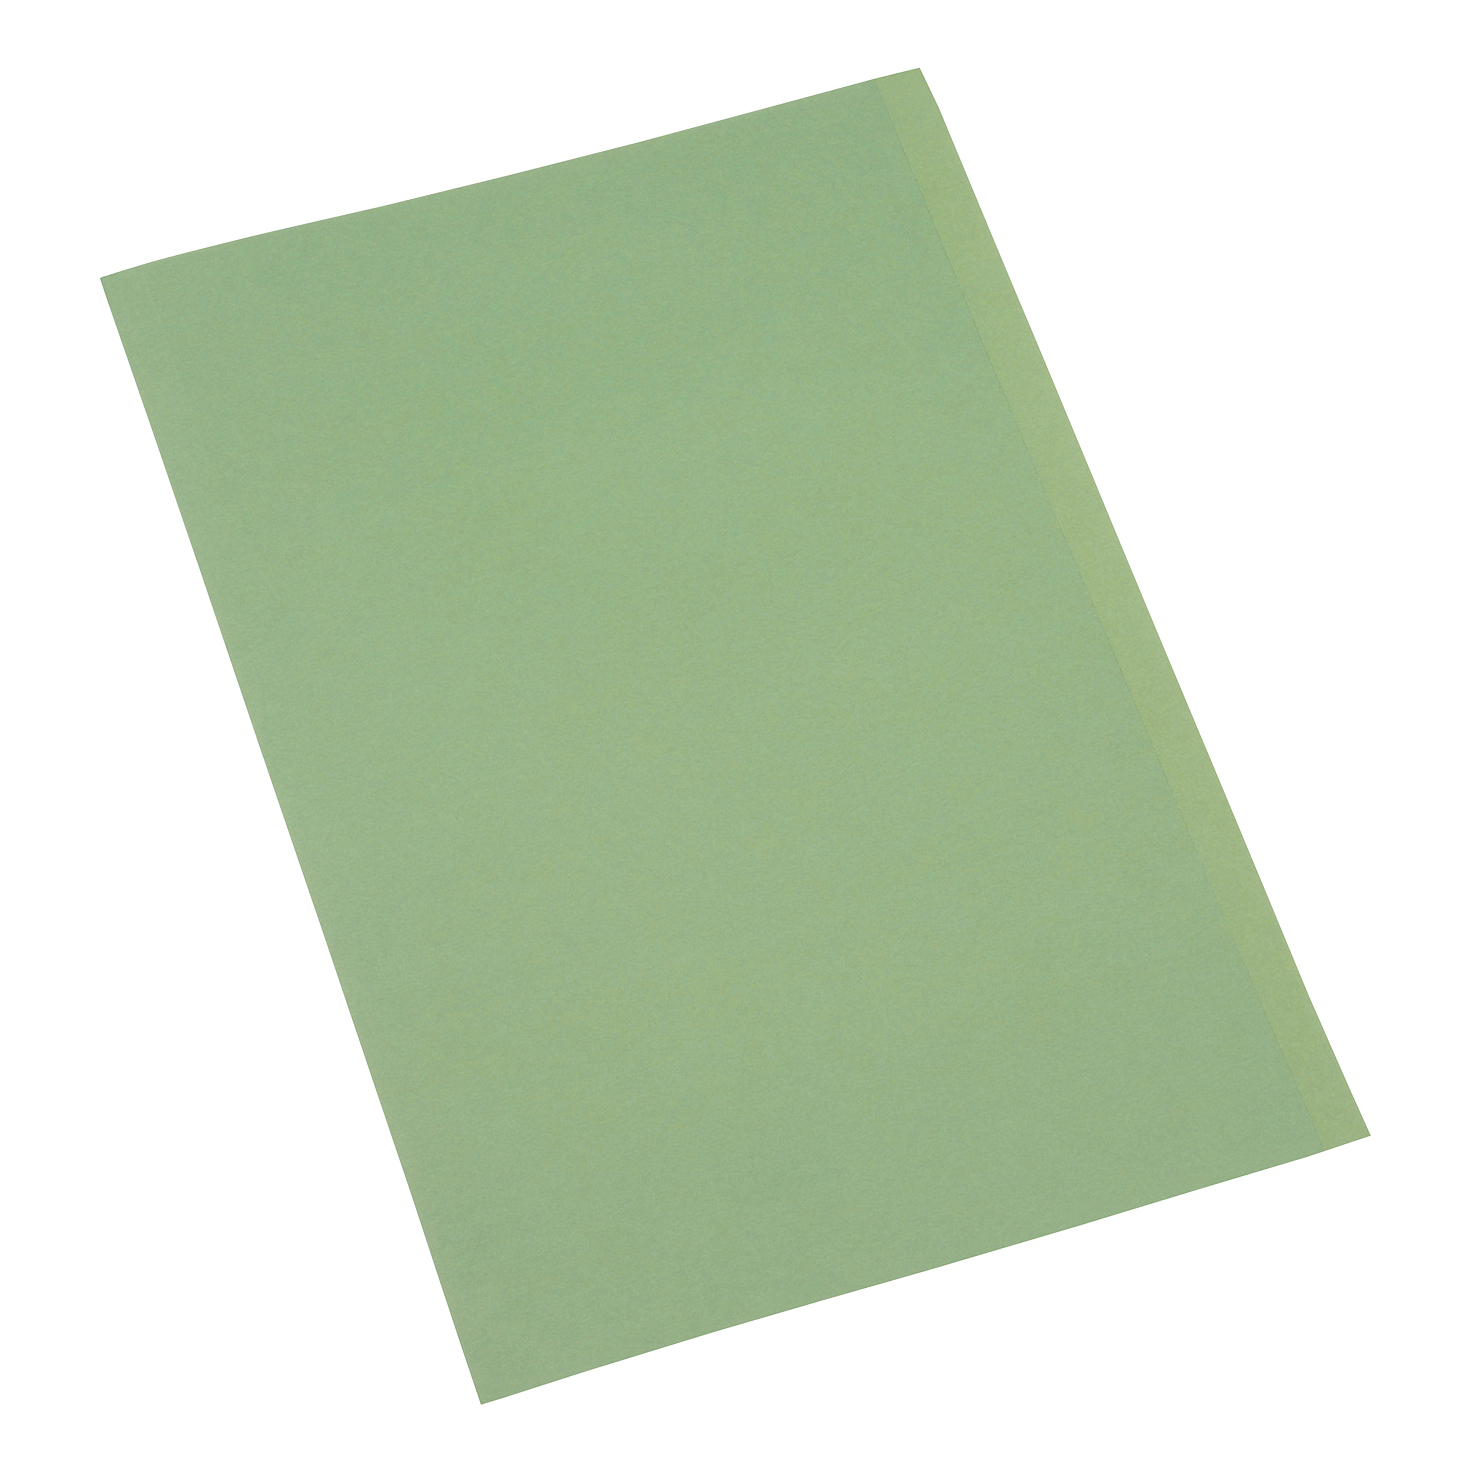 Square Cut Folders 5 Star Office Square Cut Folder Recycled 250gsm Foolscap Green Pack 100